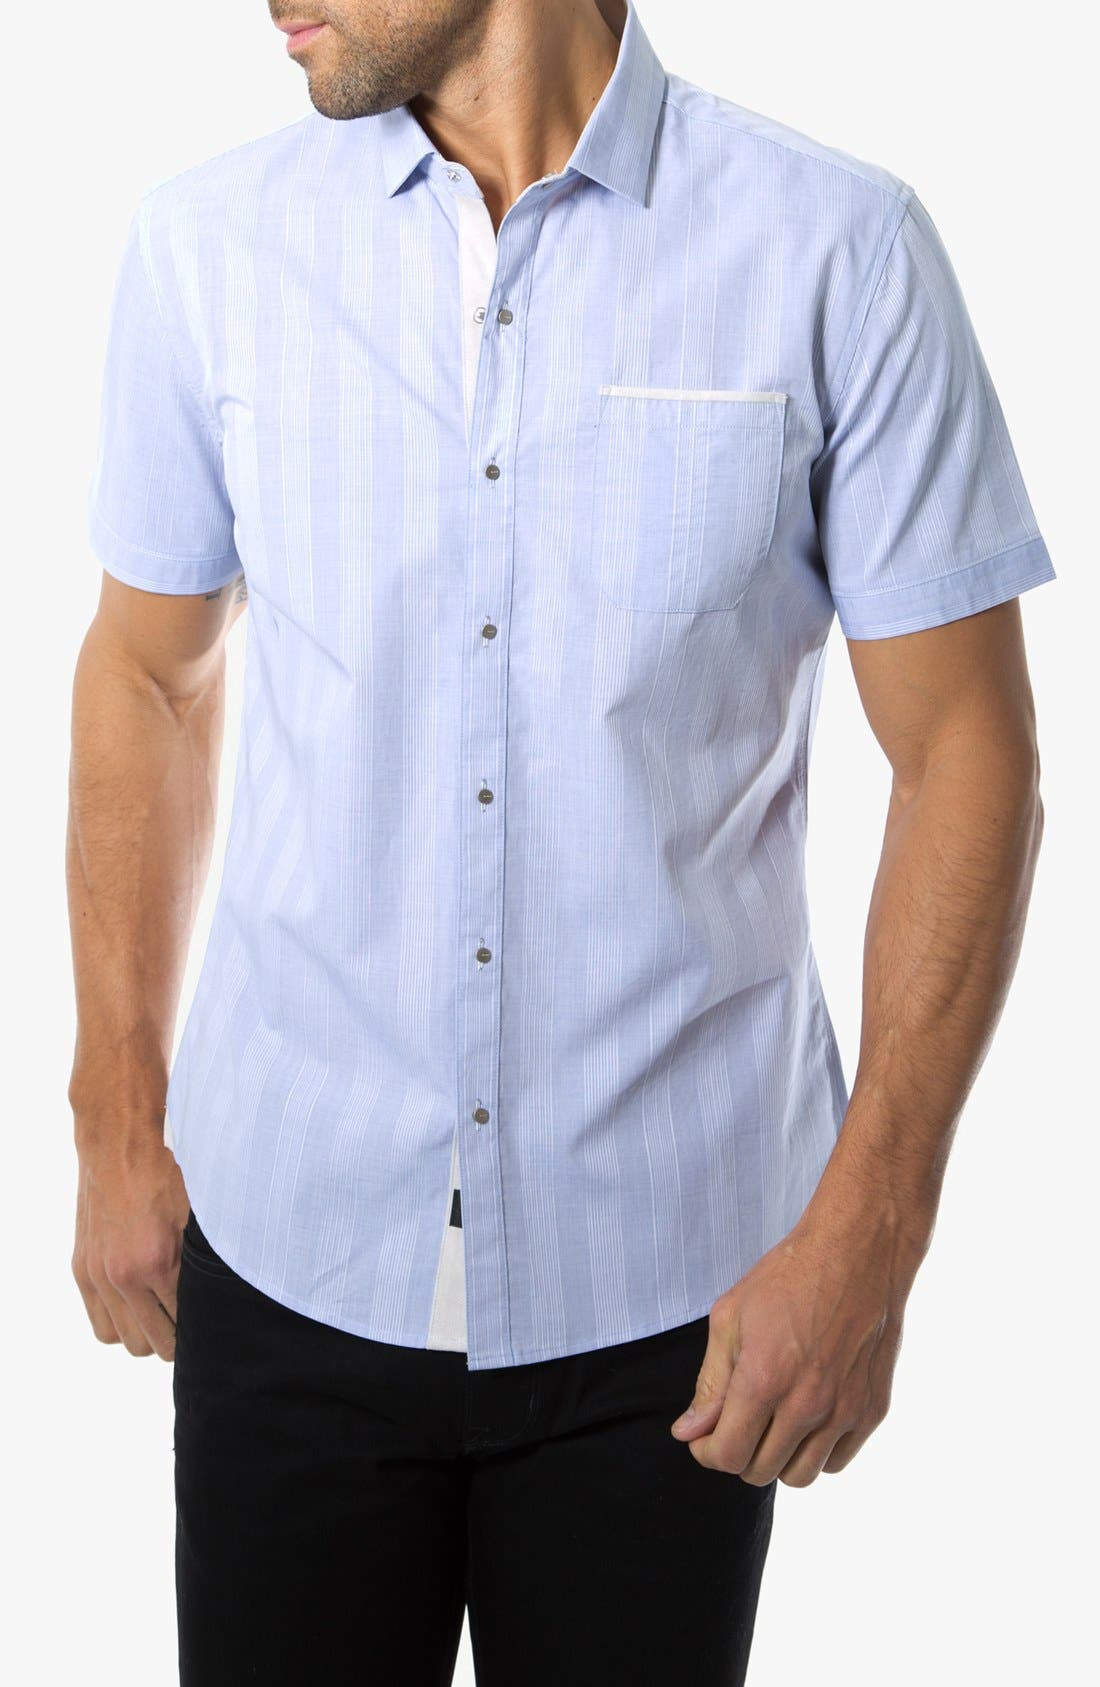 Alternate Image 1 Selected - 7 Diamonds 'Hilltop Party' Striped Woven Short Sleeve Shirt